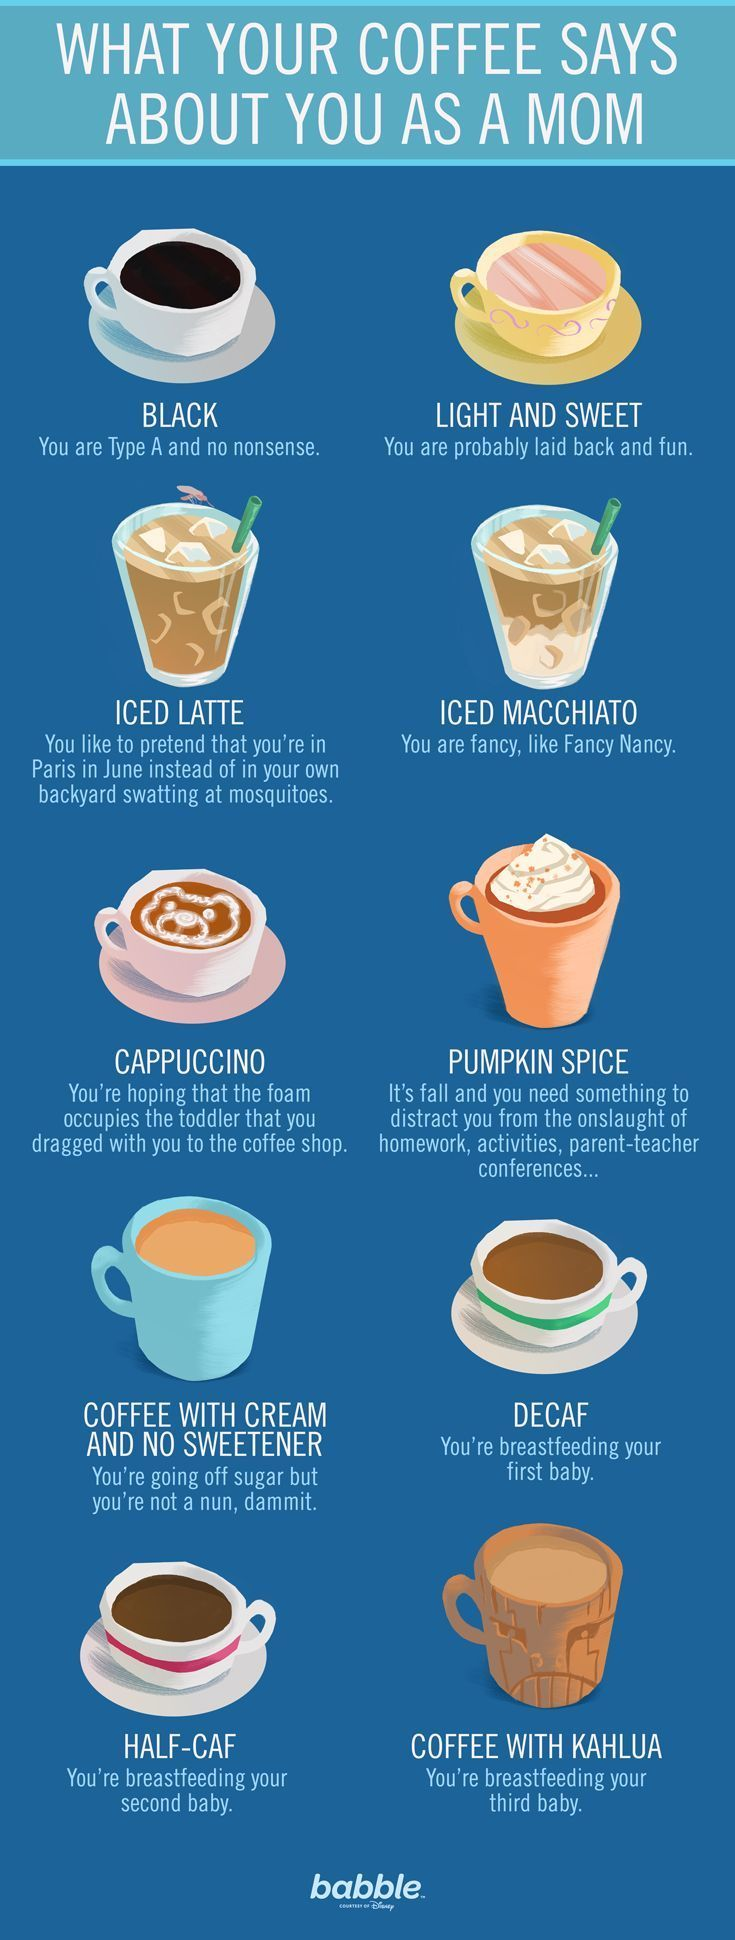 What Your Coffee Says About You As A Mom Babble Whether You Take Your Coffee Decaf Or With Double Shots Of Pumpkin Spice Re Coffee Recipes Pumpkin Spice Food